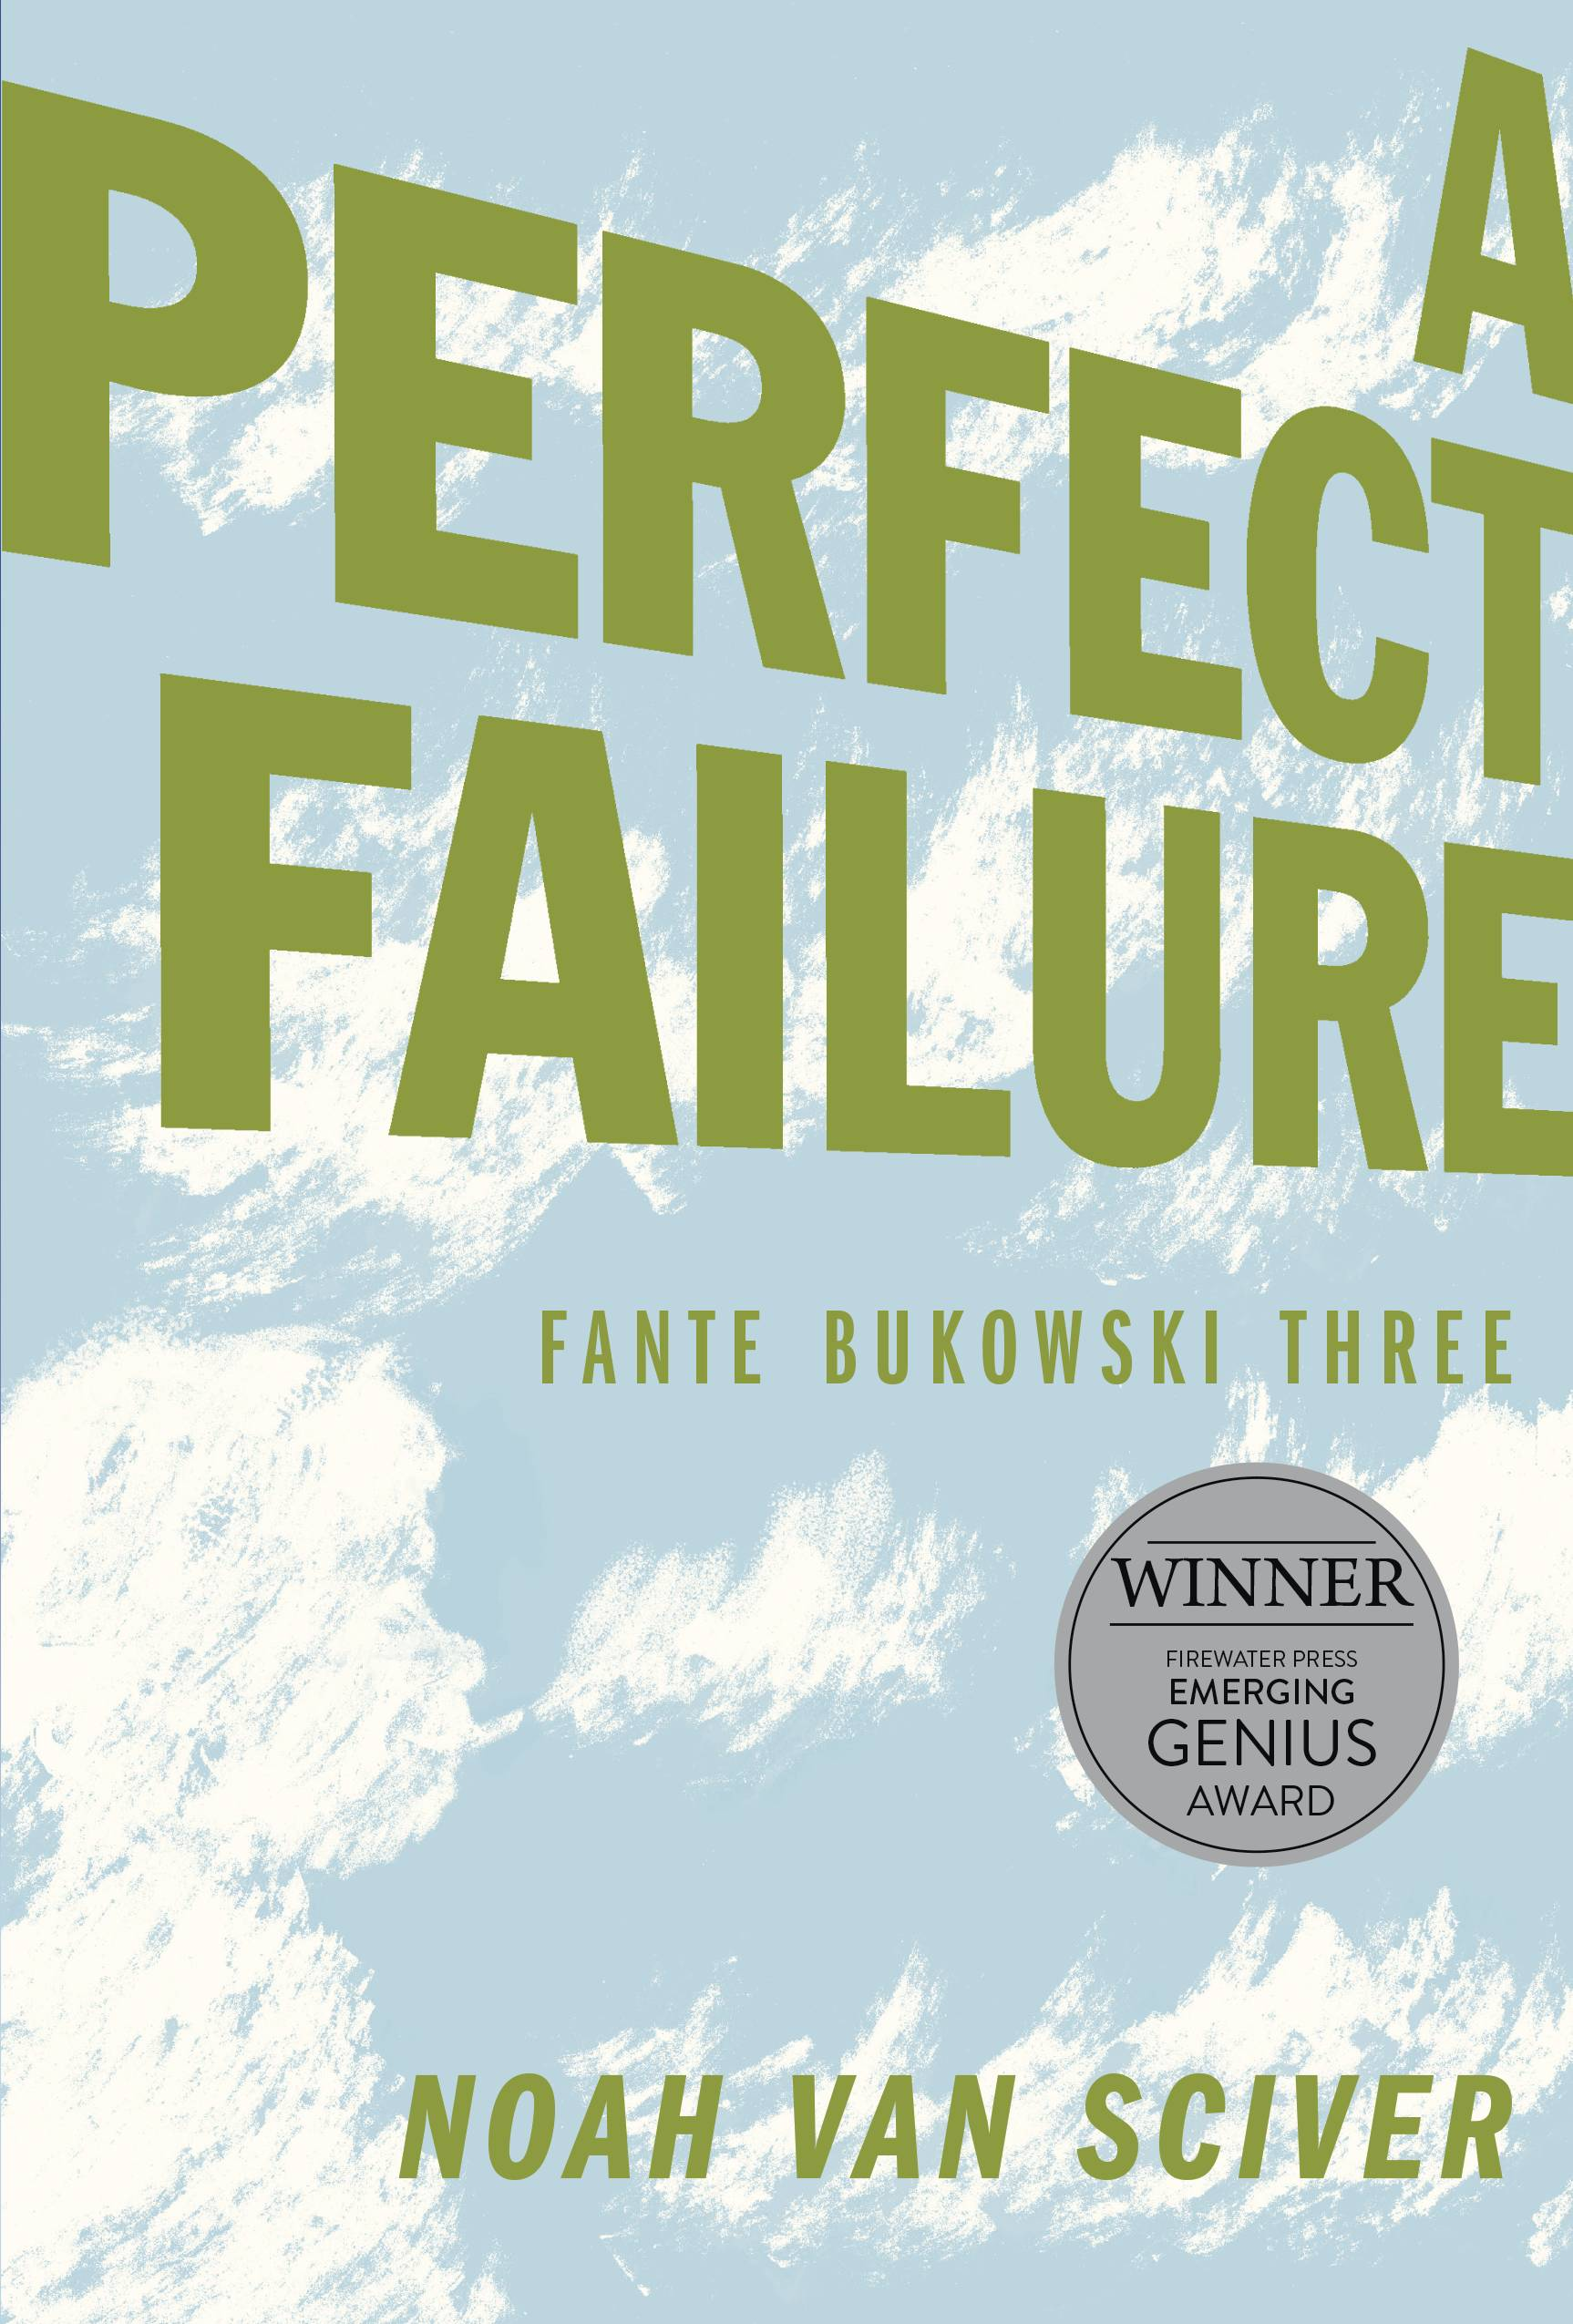 FANTE BUKOWSKI GN VOL 03 THREE PERFECT FAILURE